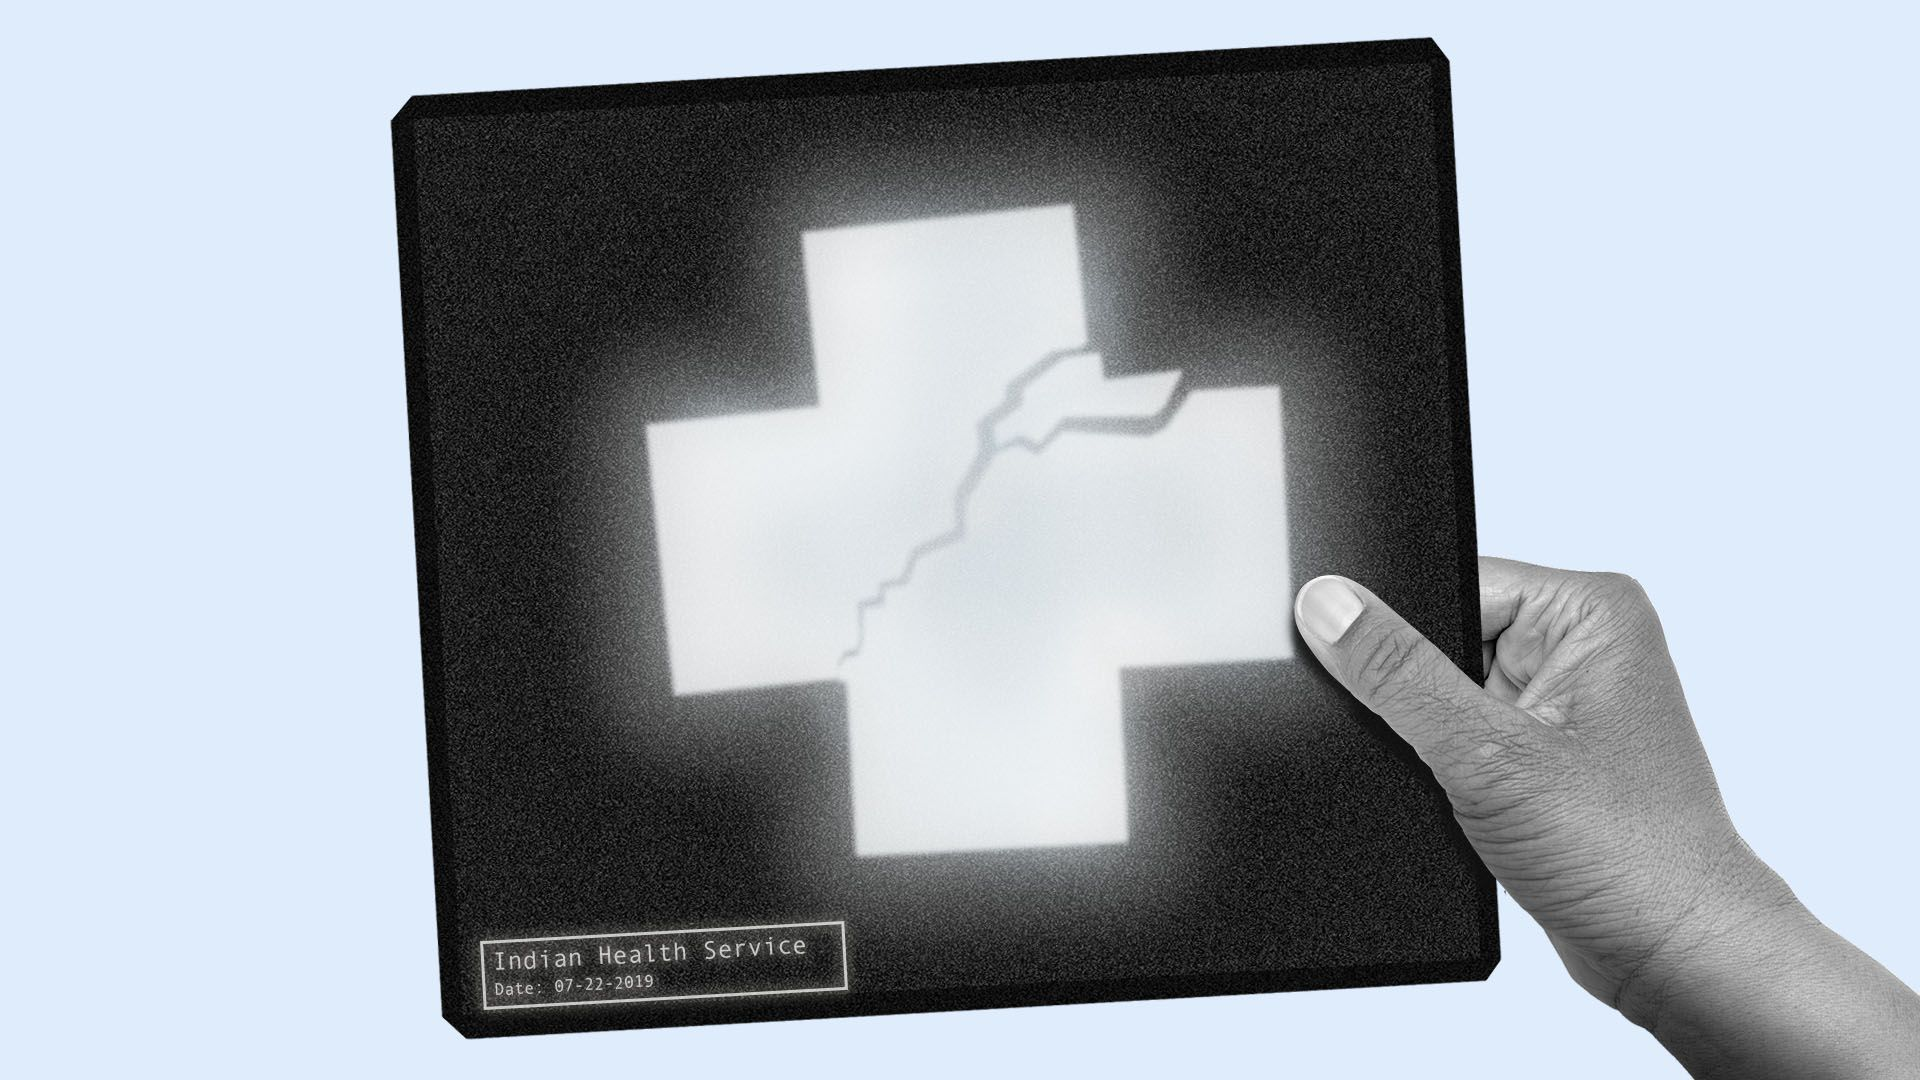 """Illustration of an x-ray with a broken red cross that reads """"Indian Health Service"""""""